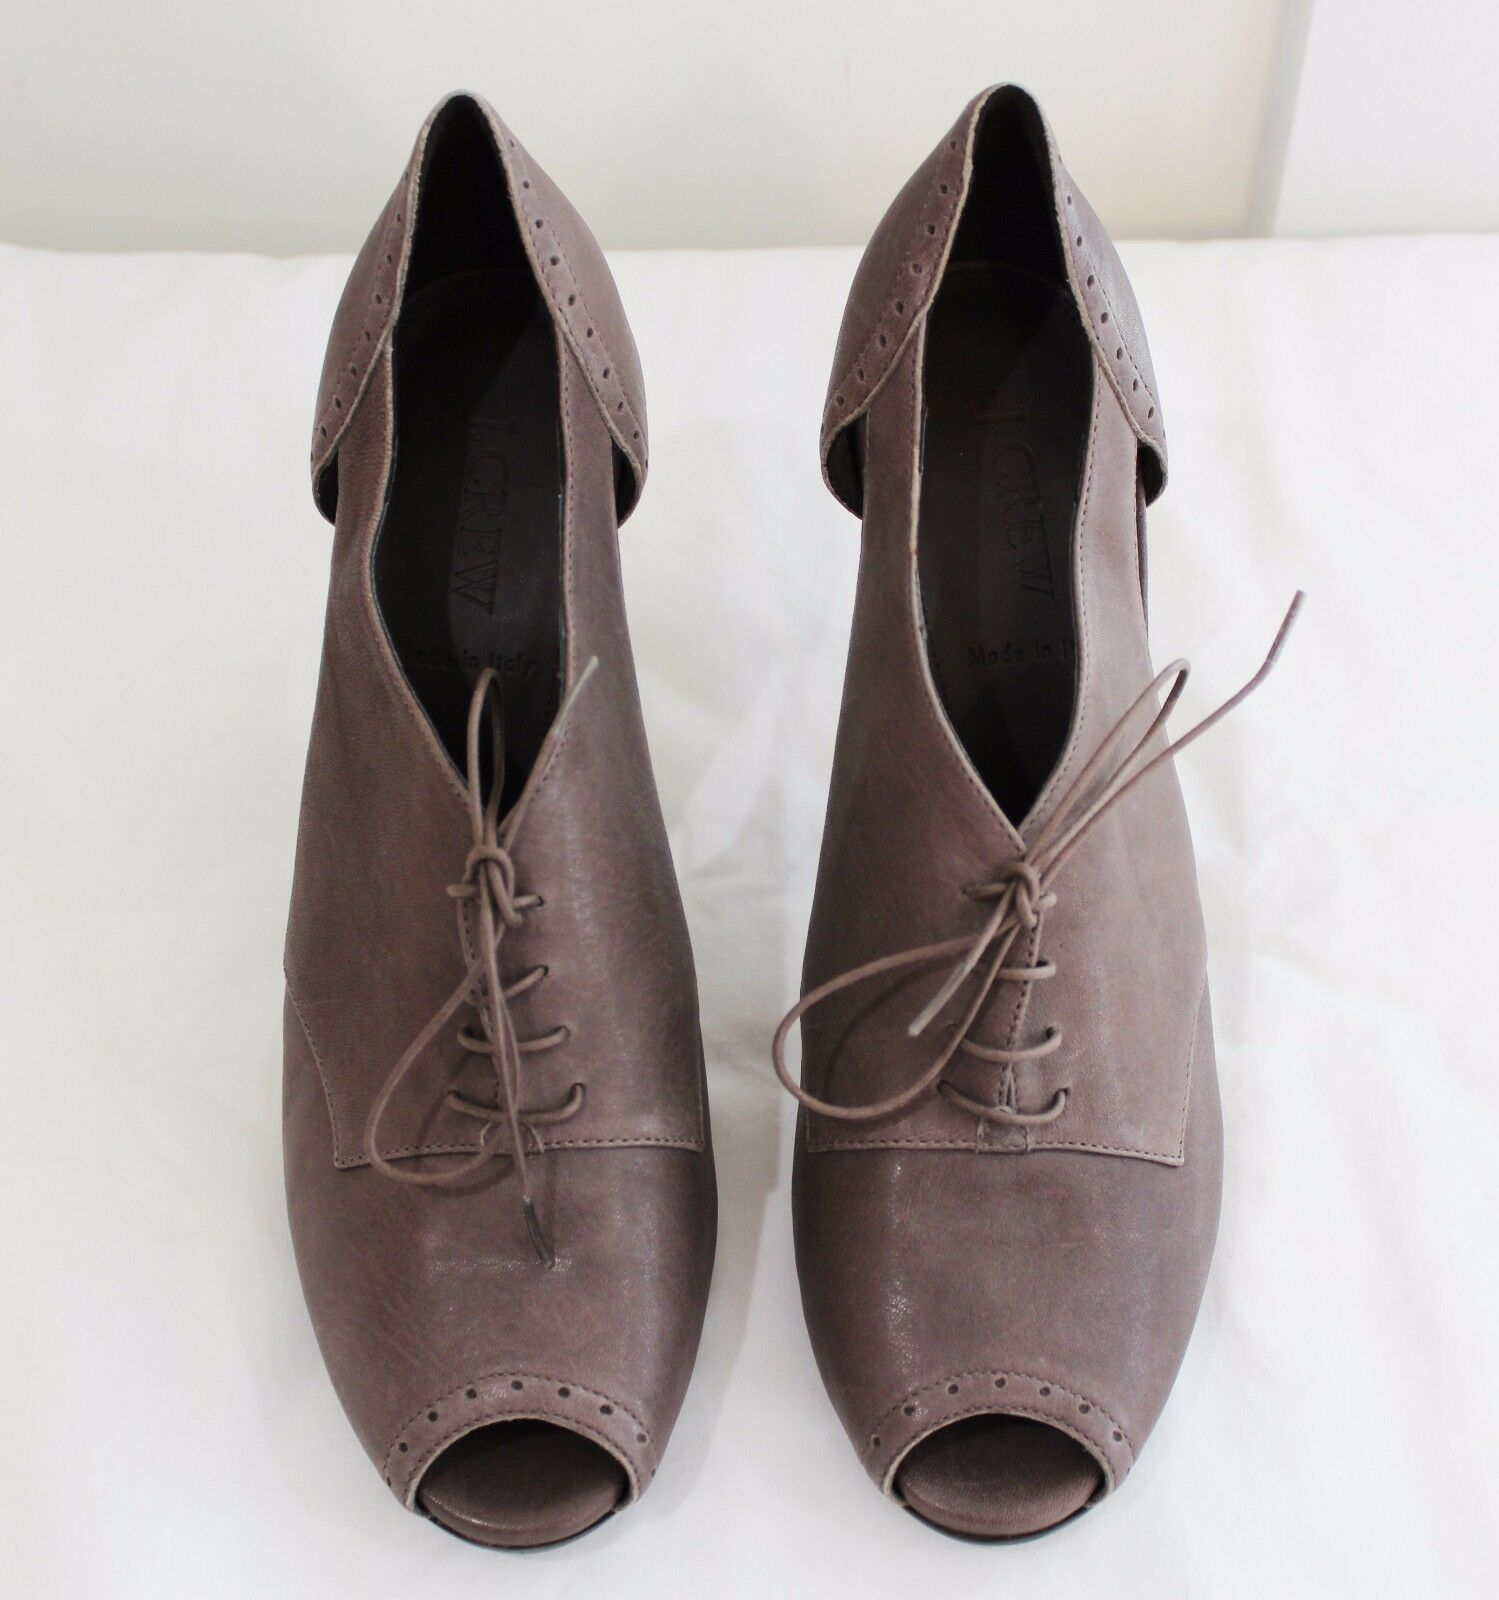 New J CREW Brown KEATON CUT-OUT HIGH HEEL OXFORDS Sz 9 Womens Style 36929